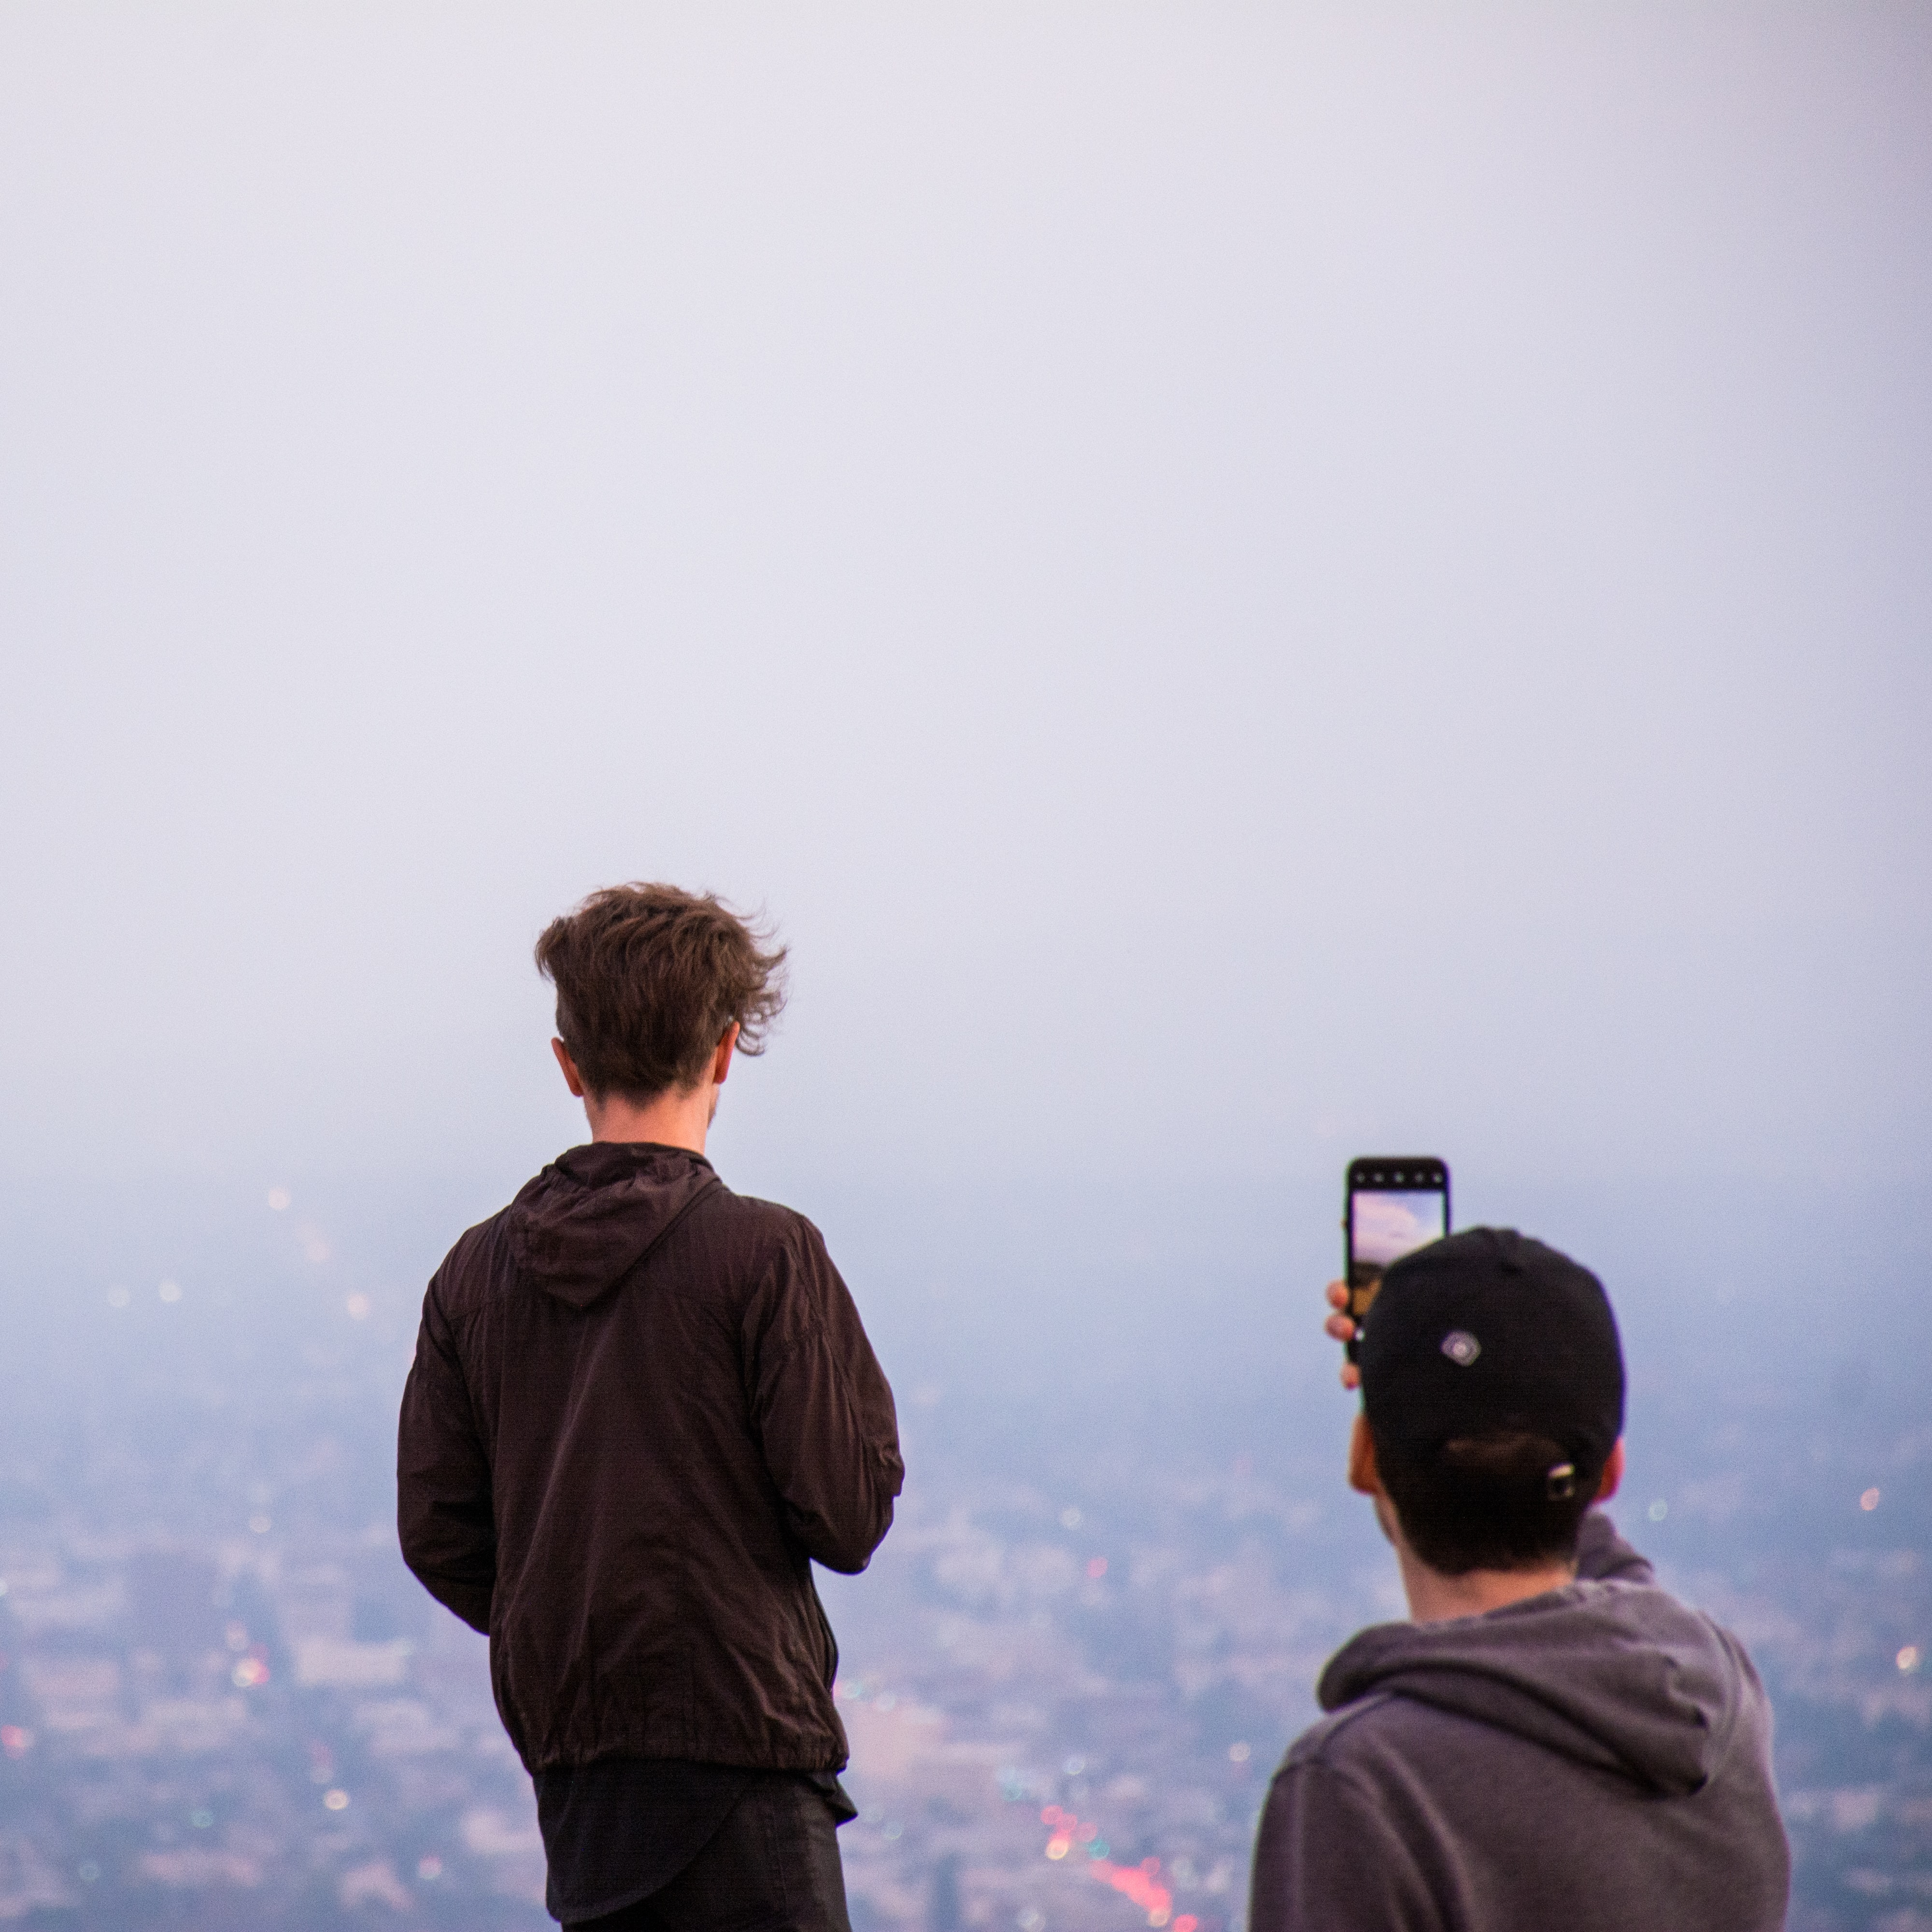 man taking a photo of a city during fog